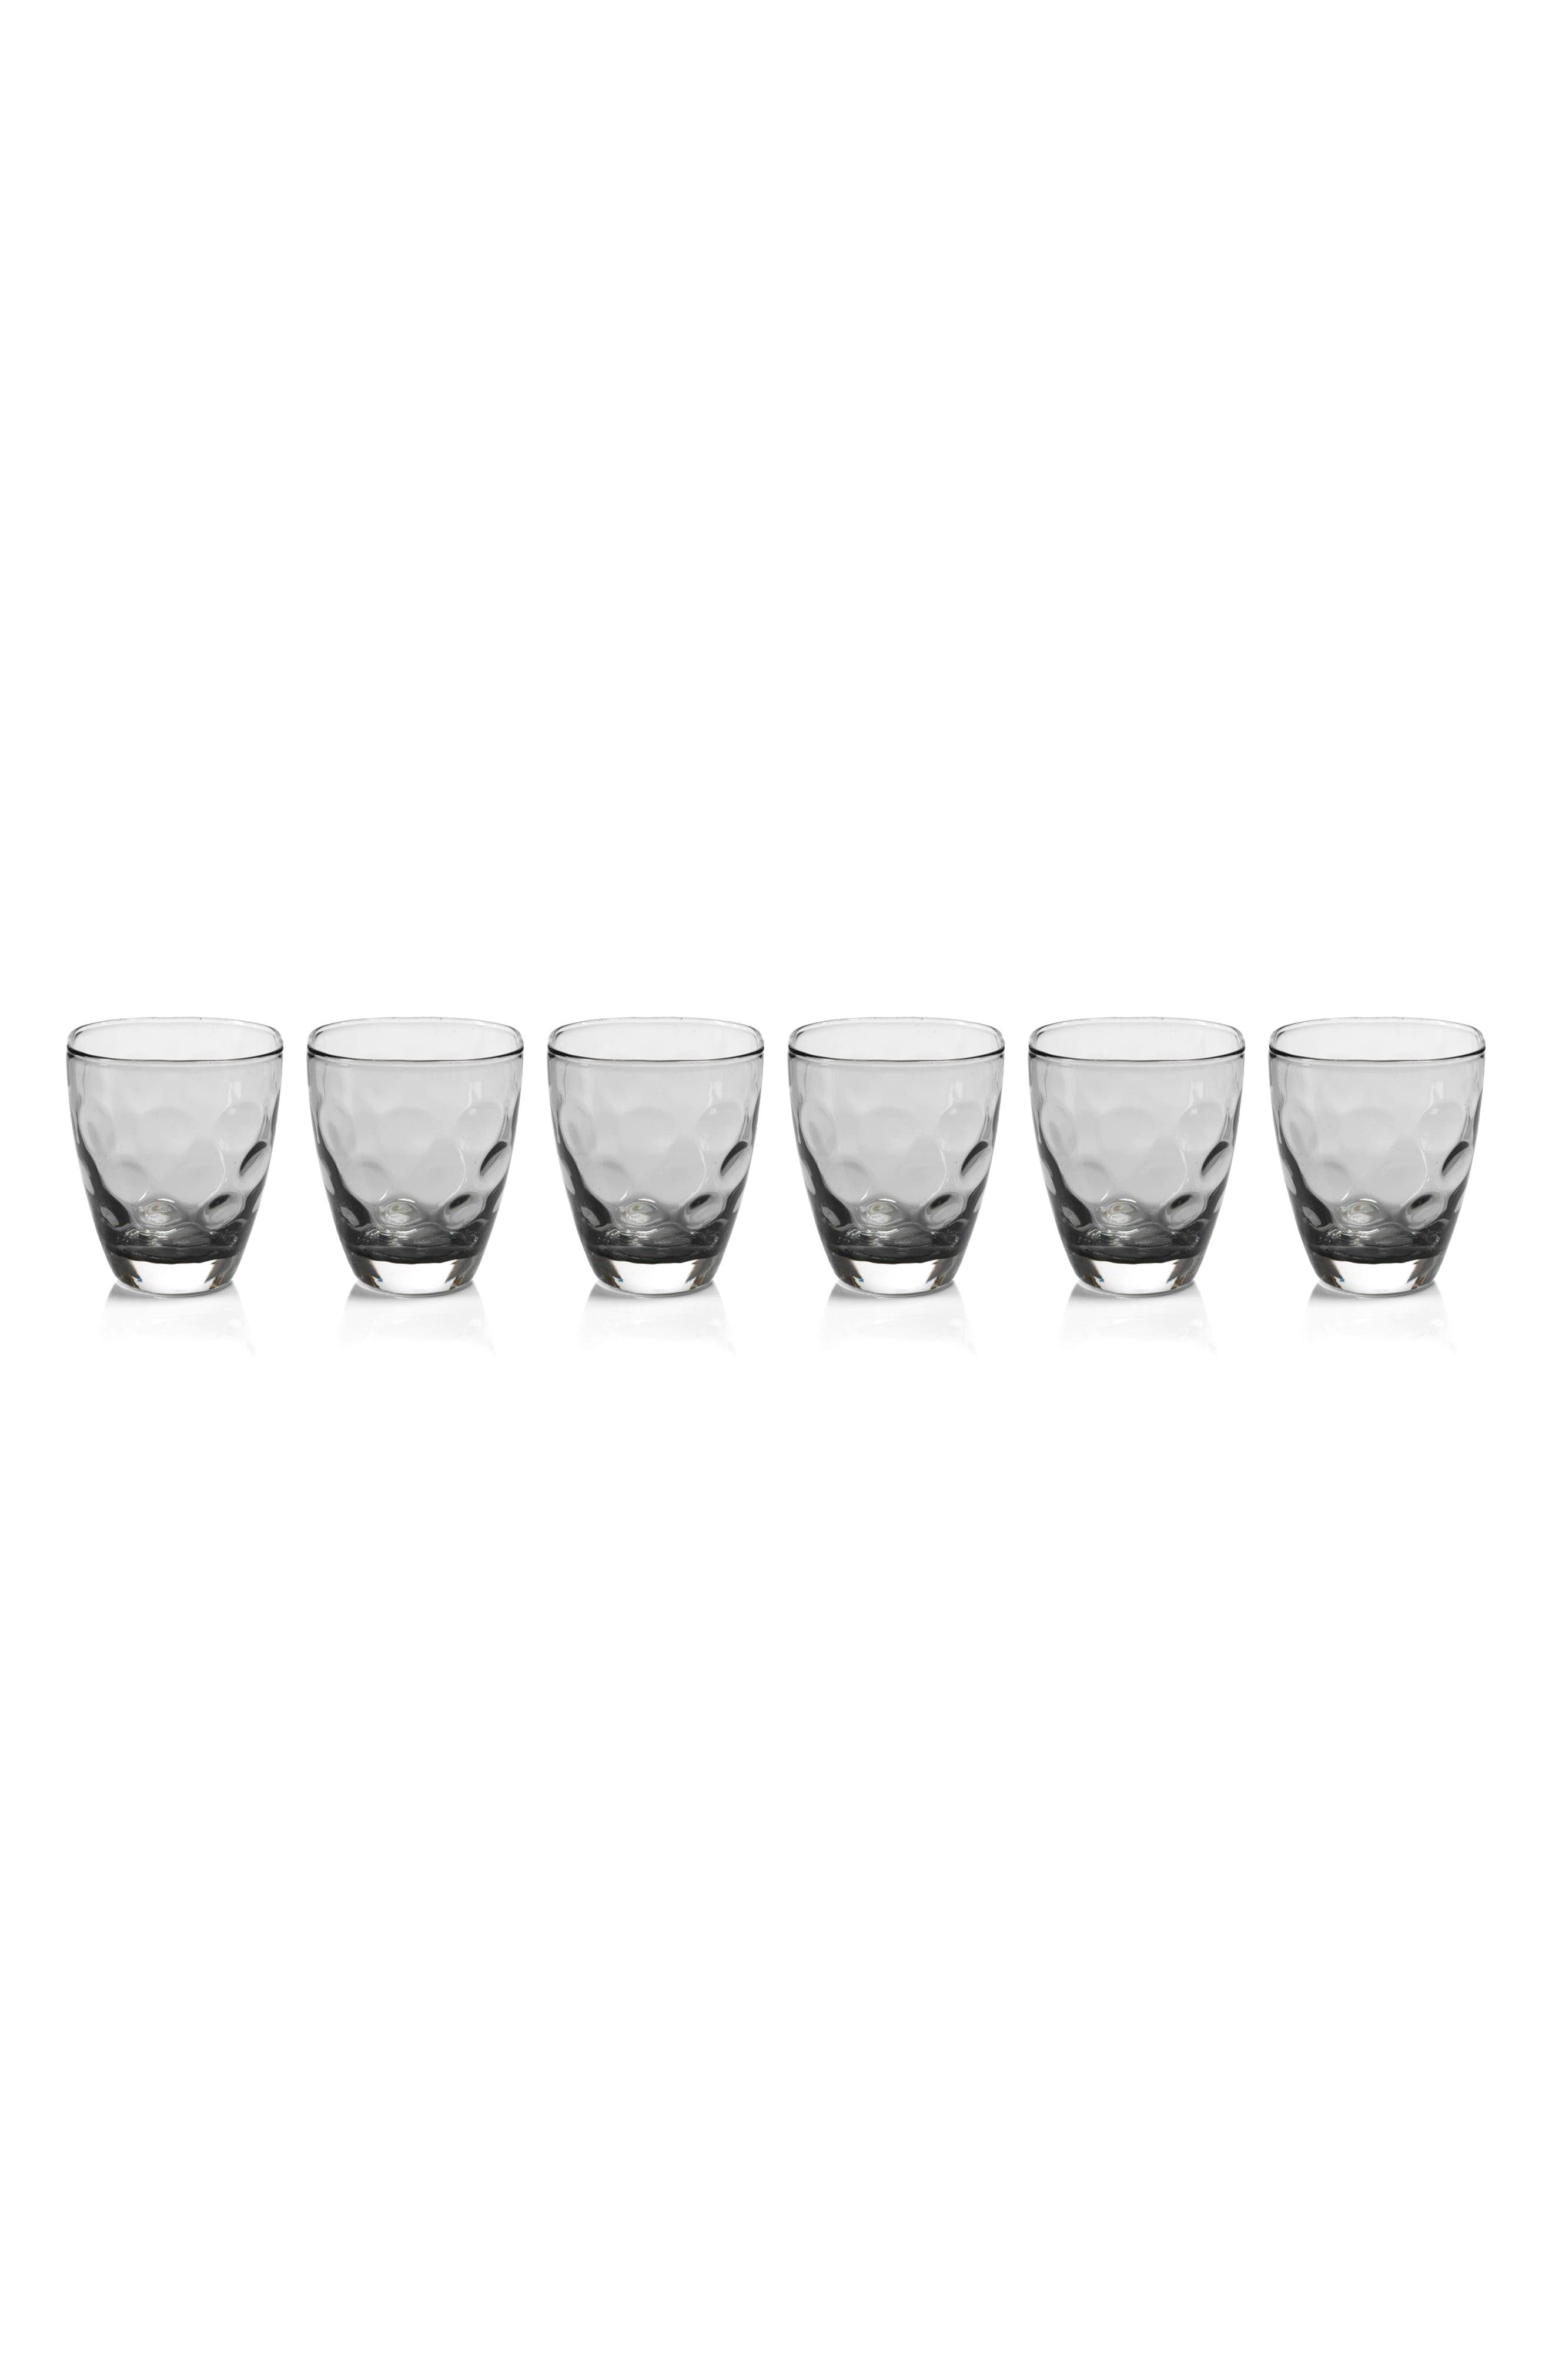 Dimpled Set of 6 Double Old Fashioned Glasses,                         Main,                         color, Clear/ Grey